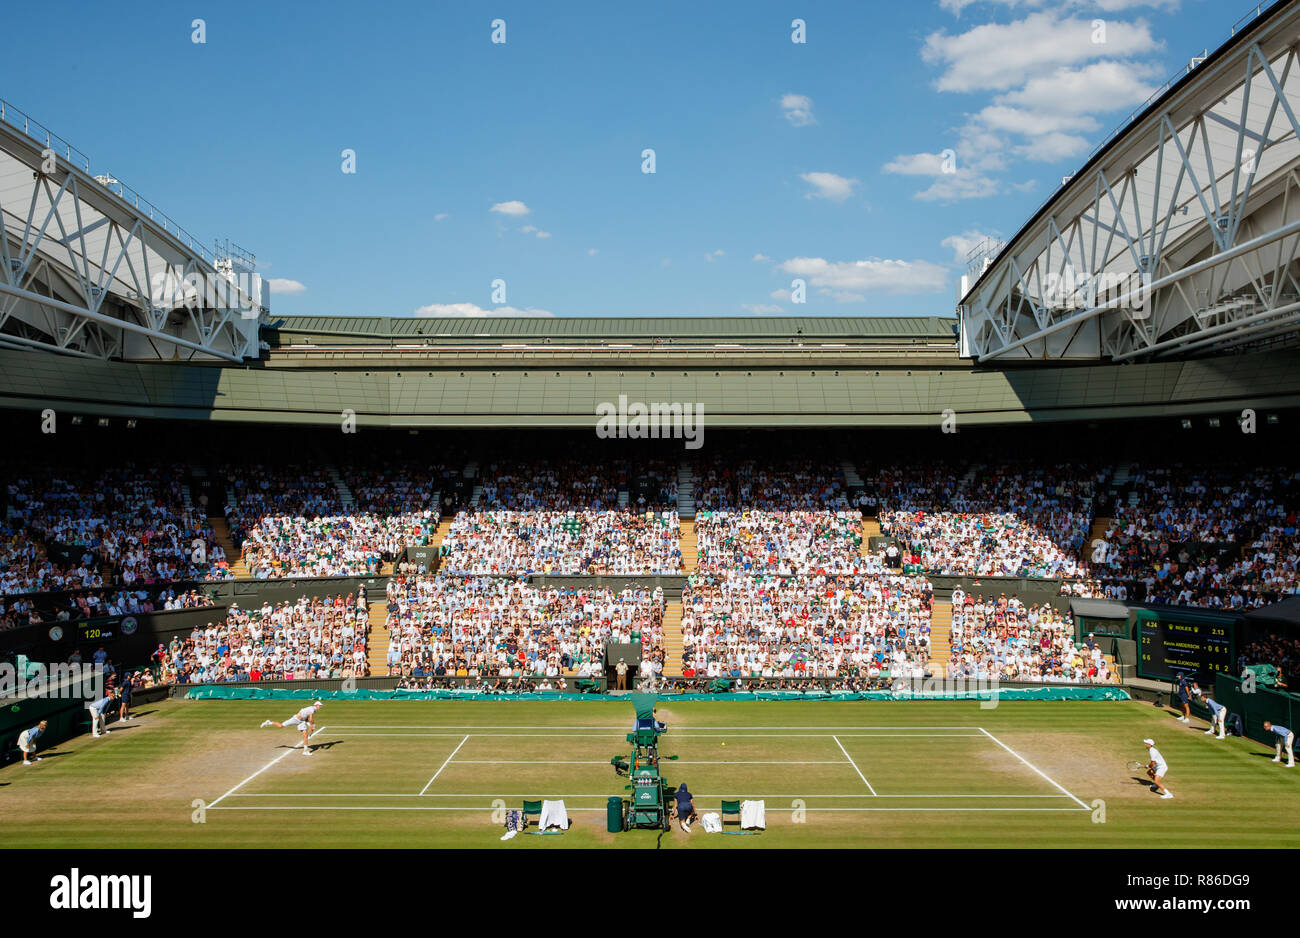 General wide view of Novak Djokovic of Serbia and Kevin Anderson of South Africa on Centre Court during the Wimbledon Championships 2019 - Stock Image